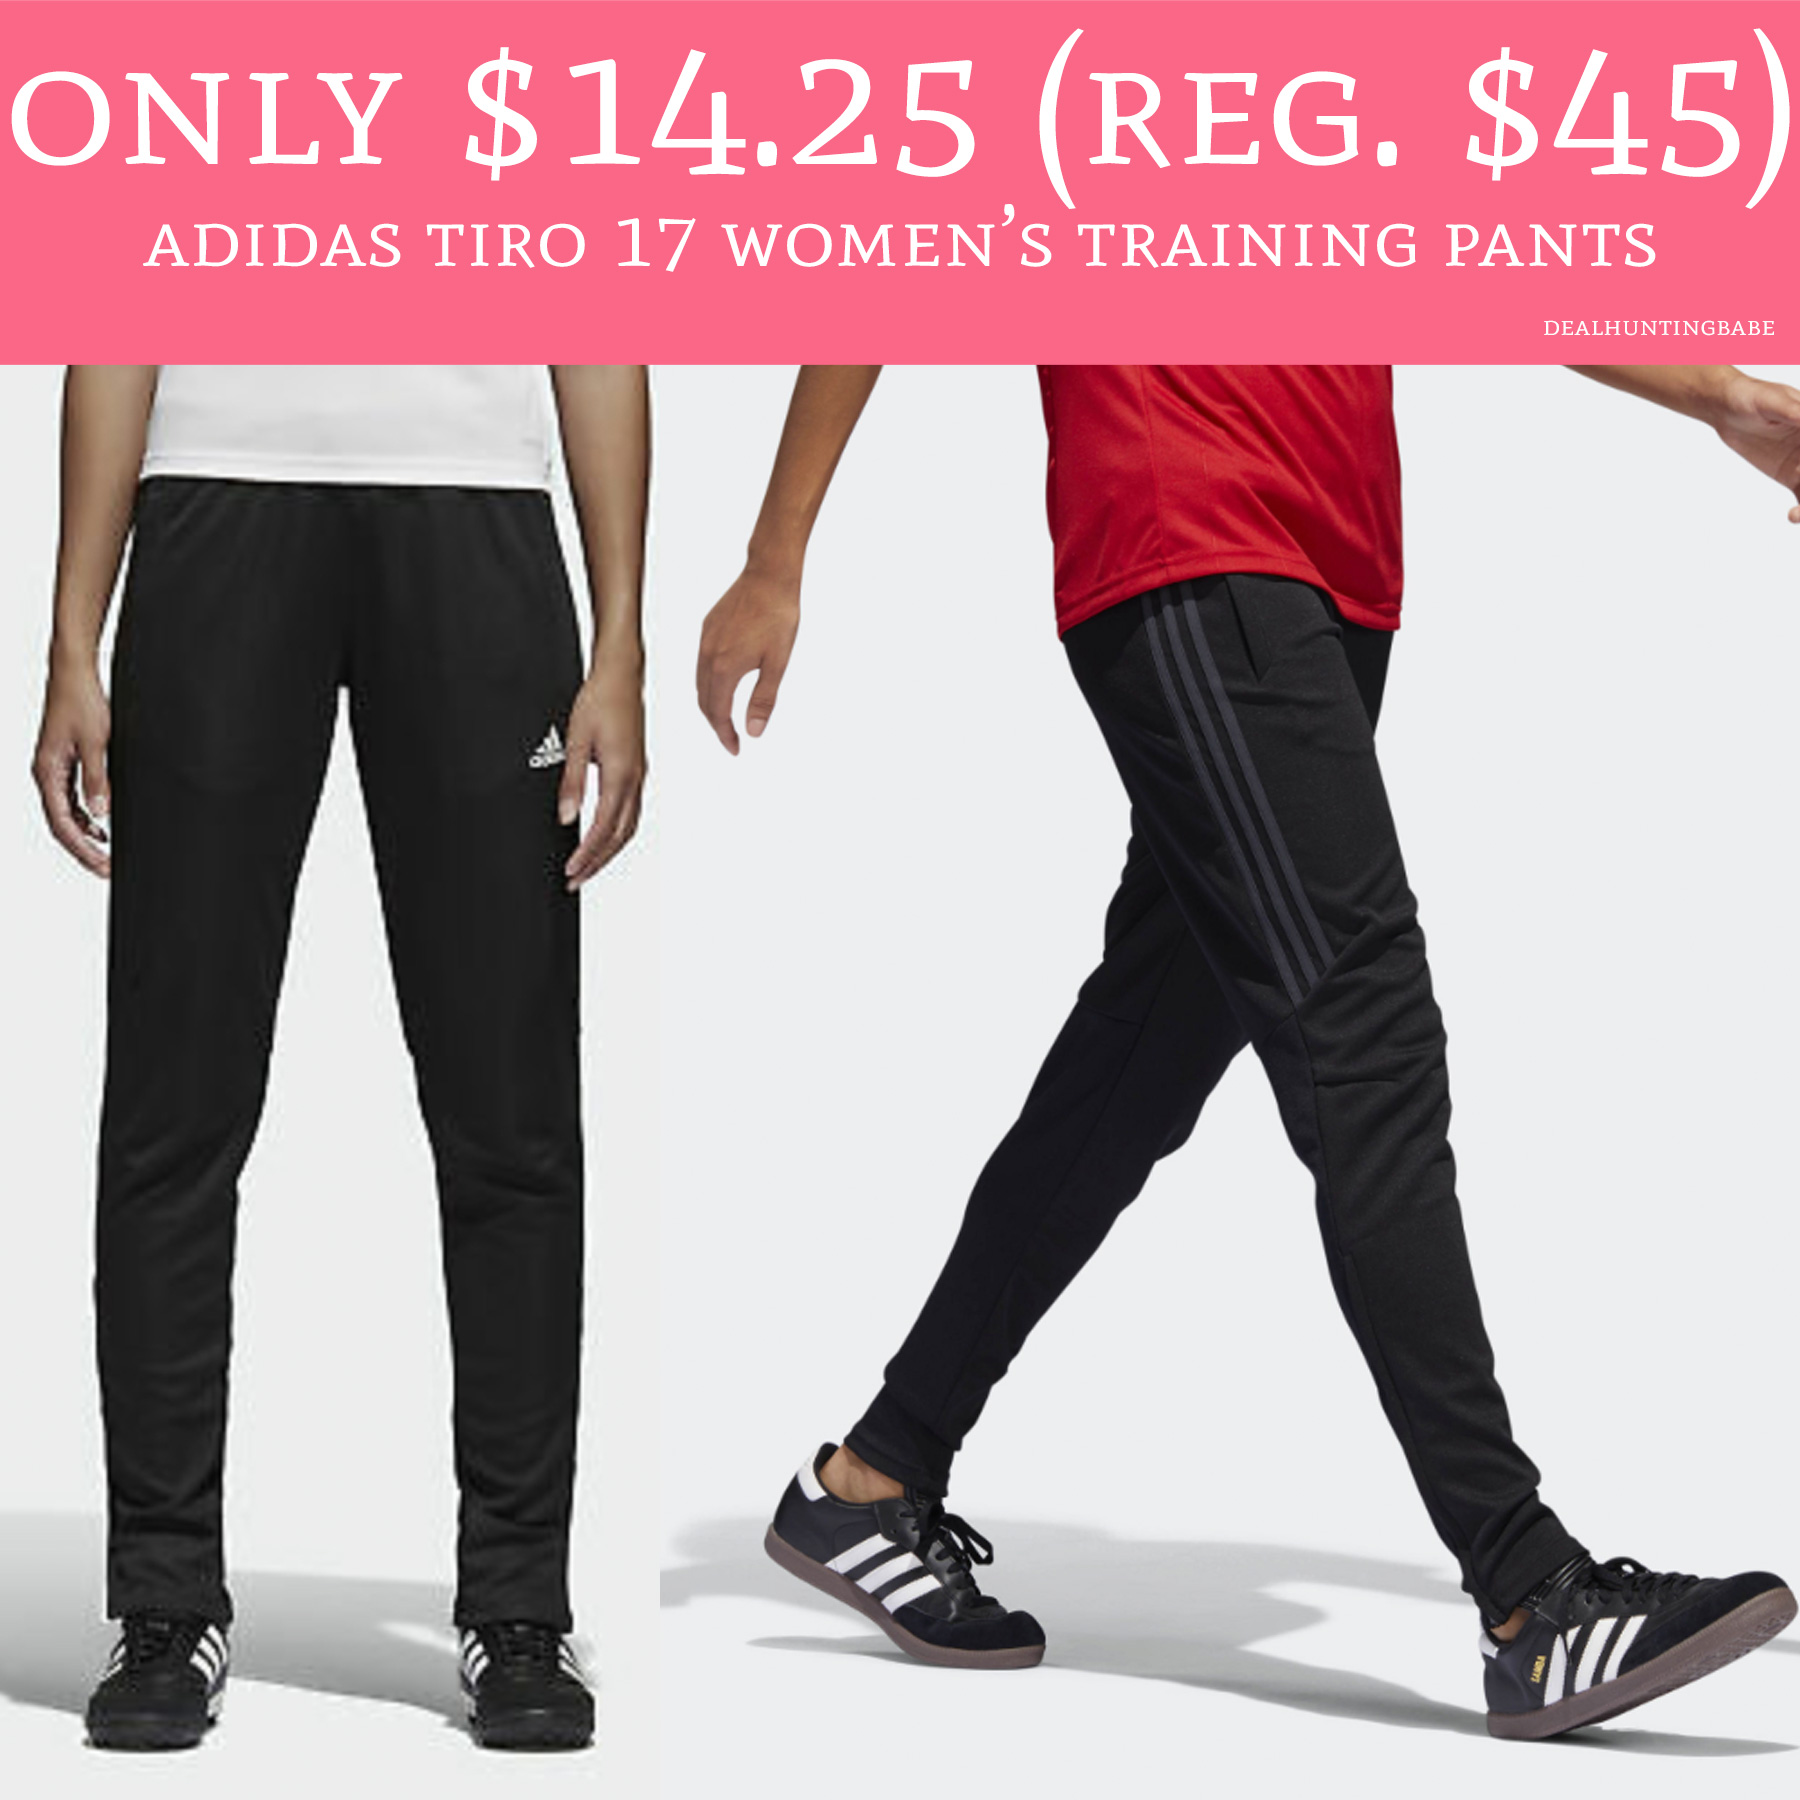 af2f11dded These will sell out fast! Hurry to ebay.com where you can order the Adidas  Tiro 17 Women's Training Pants ...